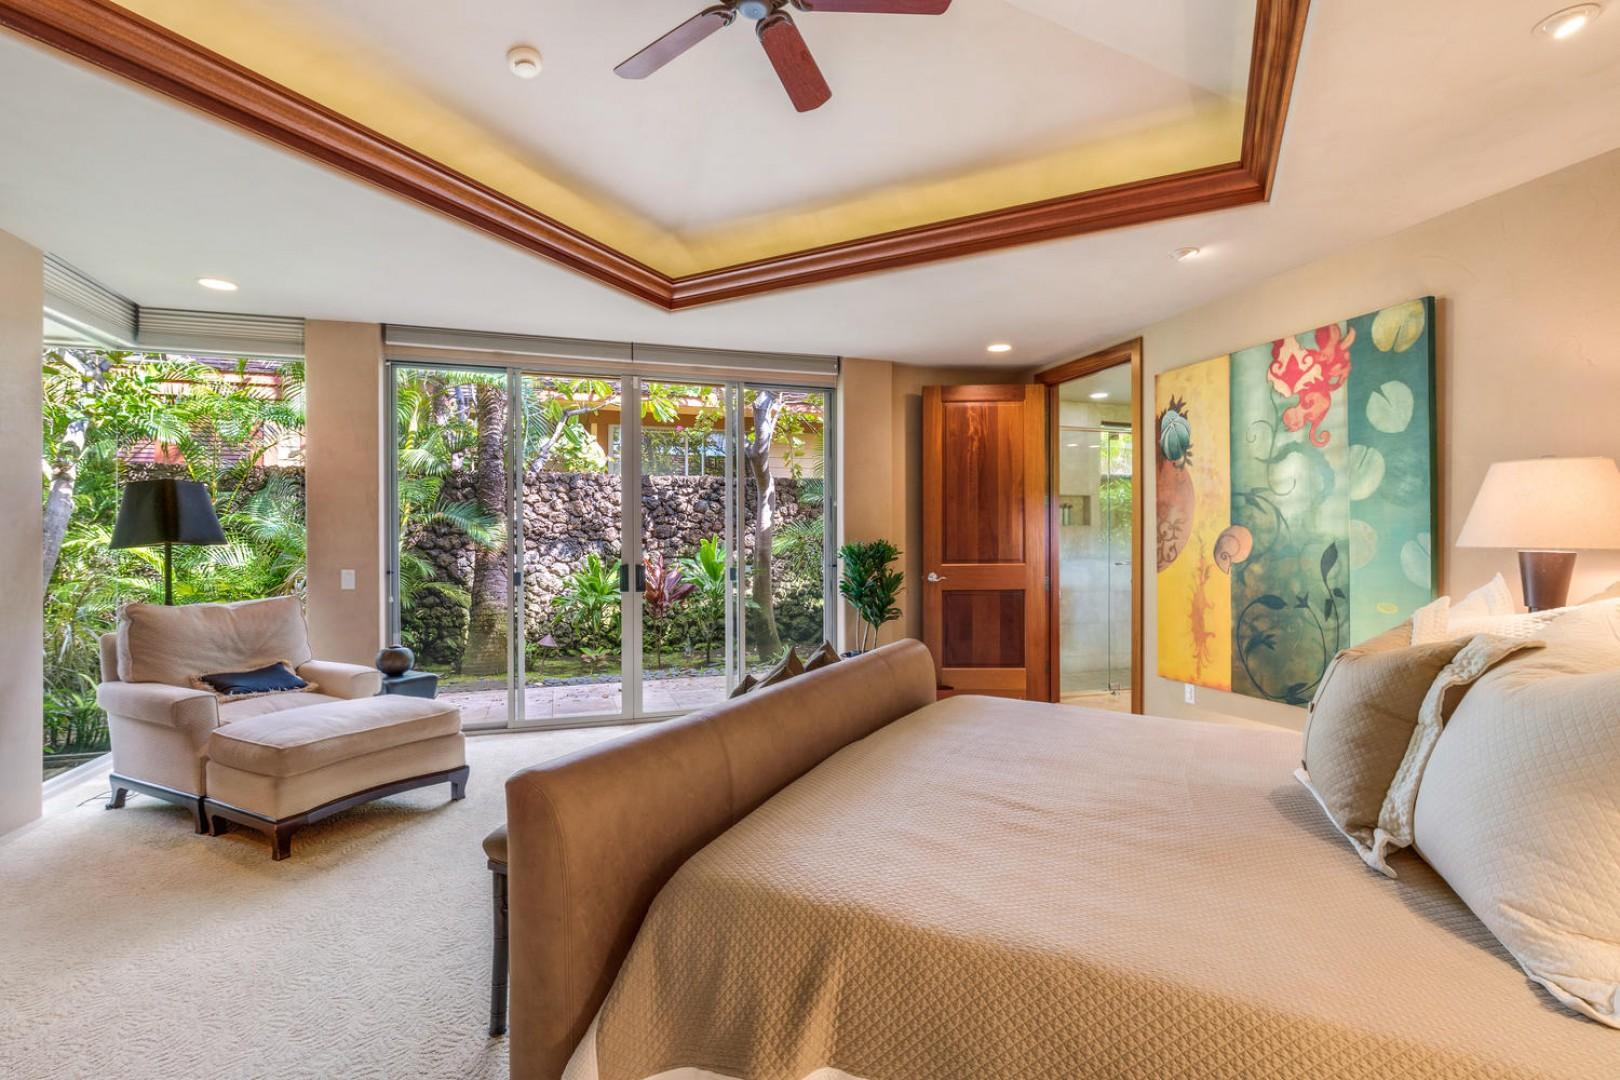 Alternate view of expansive master bedroom suite.